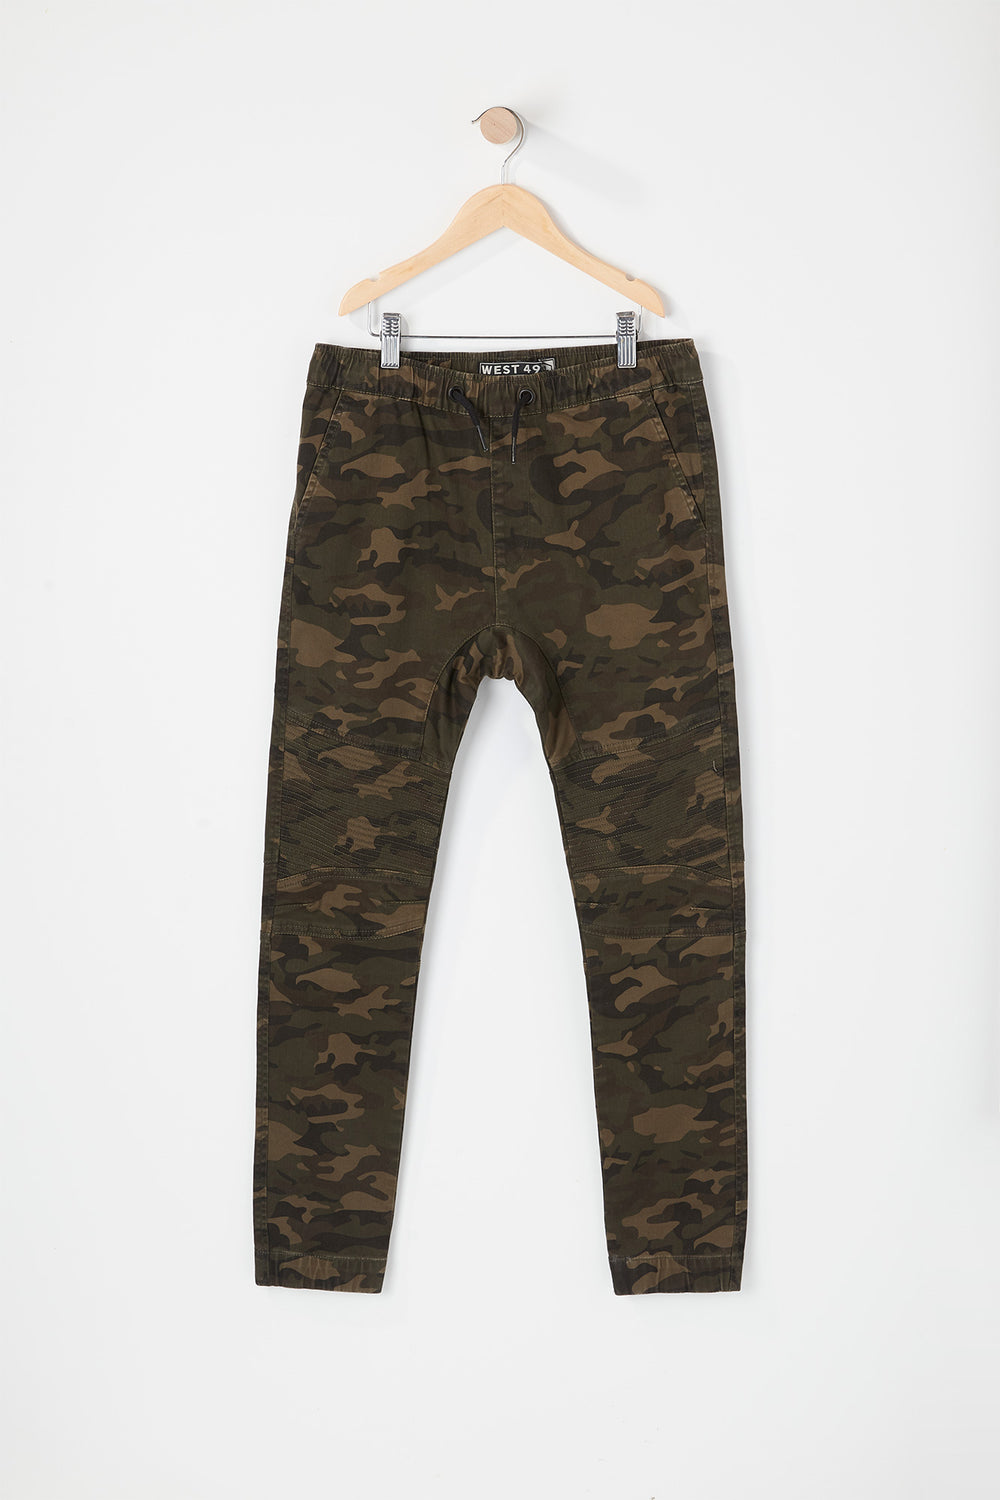 West49 Youth Camo Moto Jogger Camouflage